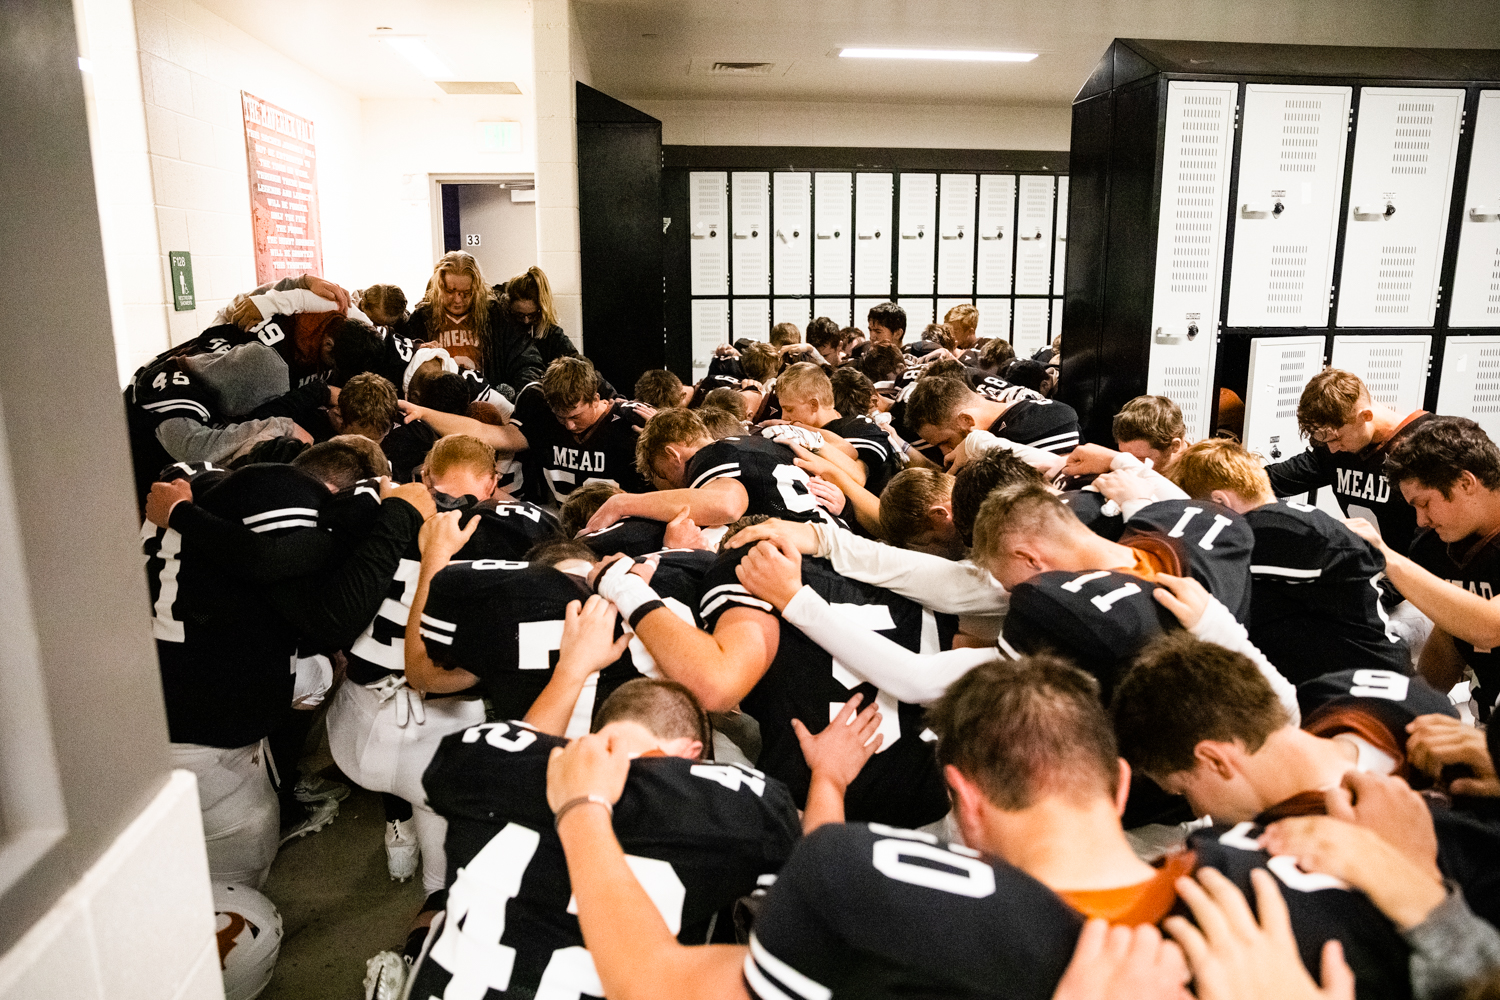 Some+aren%27t+aware+of+this%2C+but+before+every+sing+game+Klatt+and+the+team+link+together+and+pray.